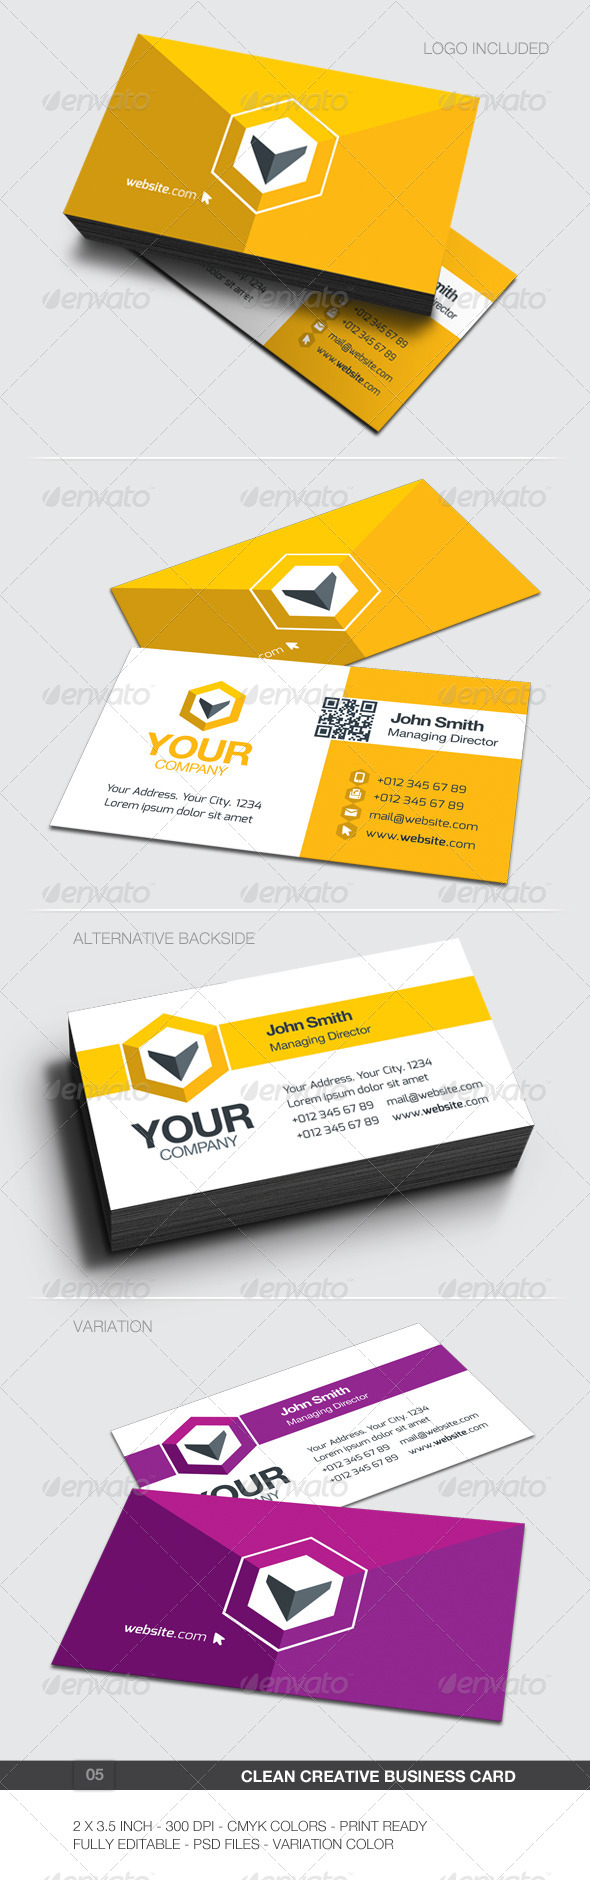 GraphicRiver Clean Creative Business Card 05 5907047